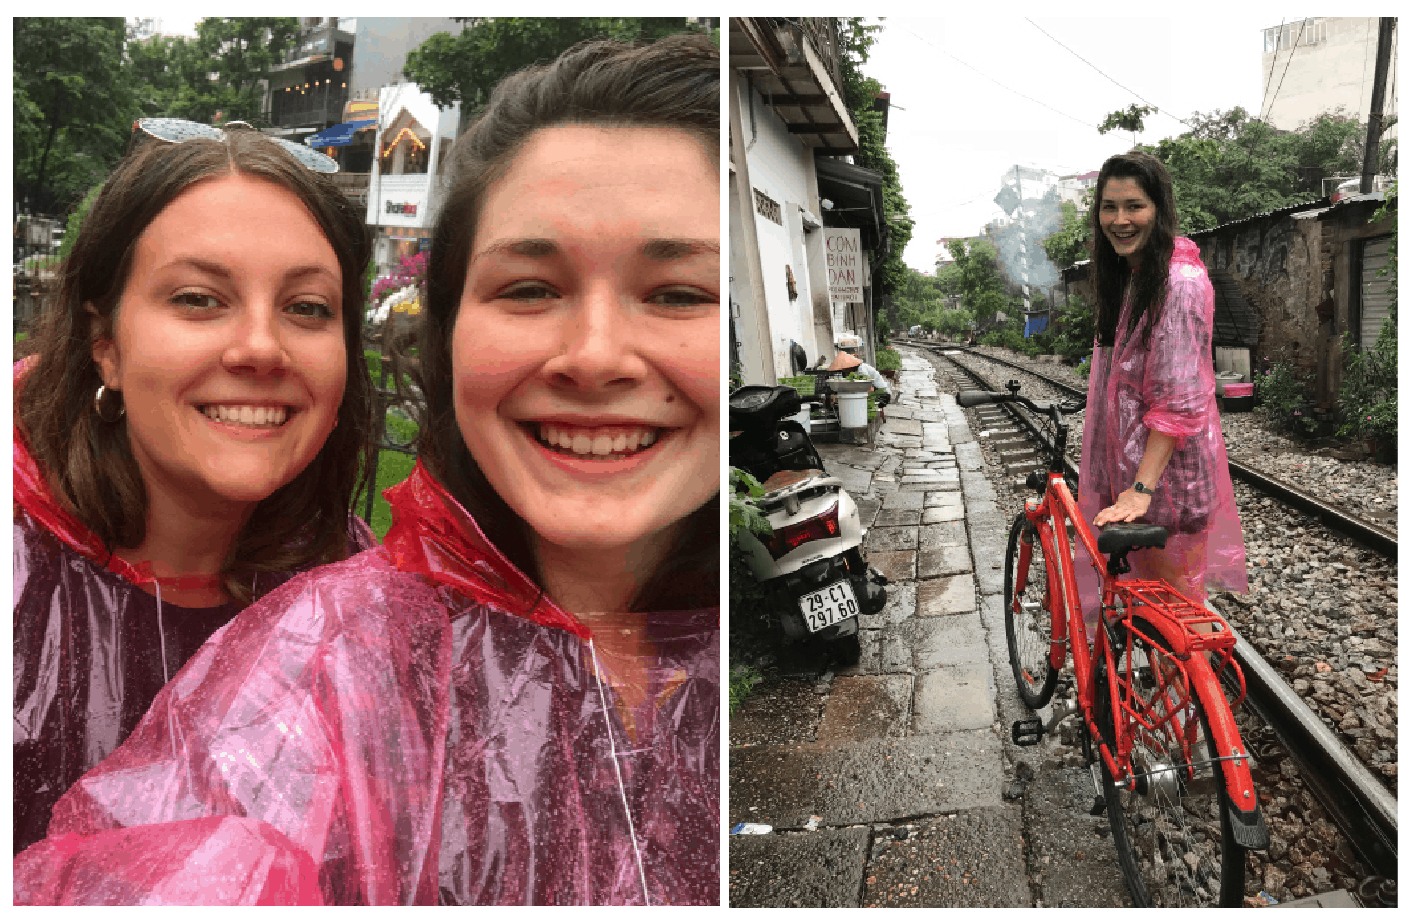 Riding in the rain on the Hanoi Bike Tour.